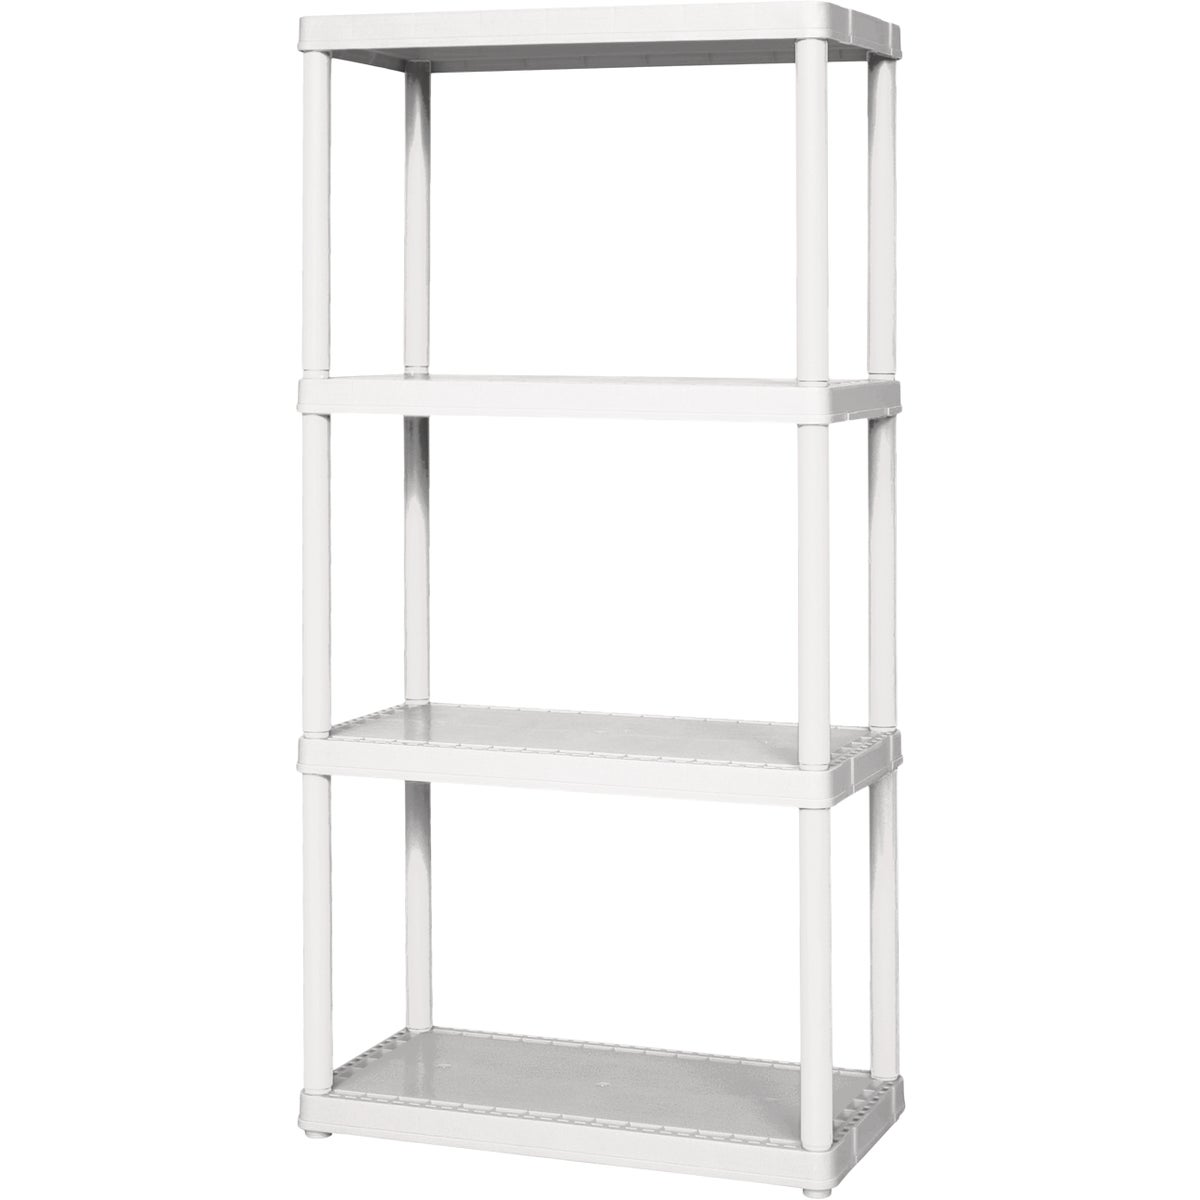 BLK 4TIER 48X22X14 SHELF